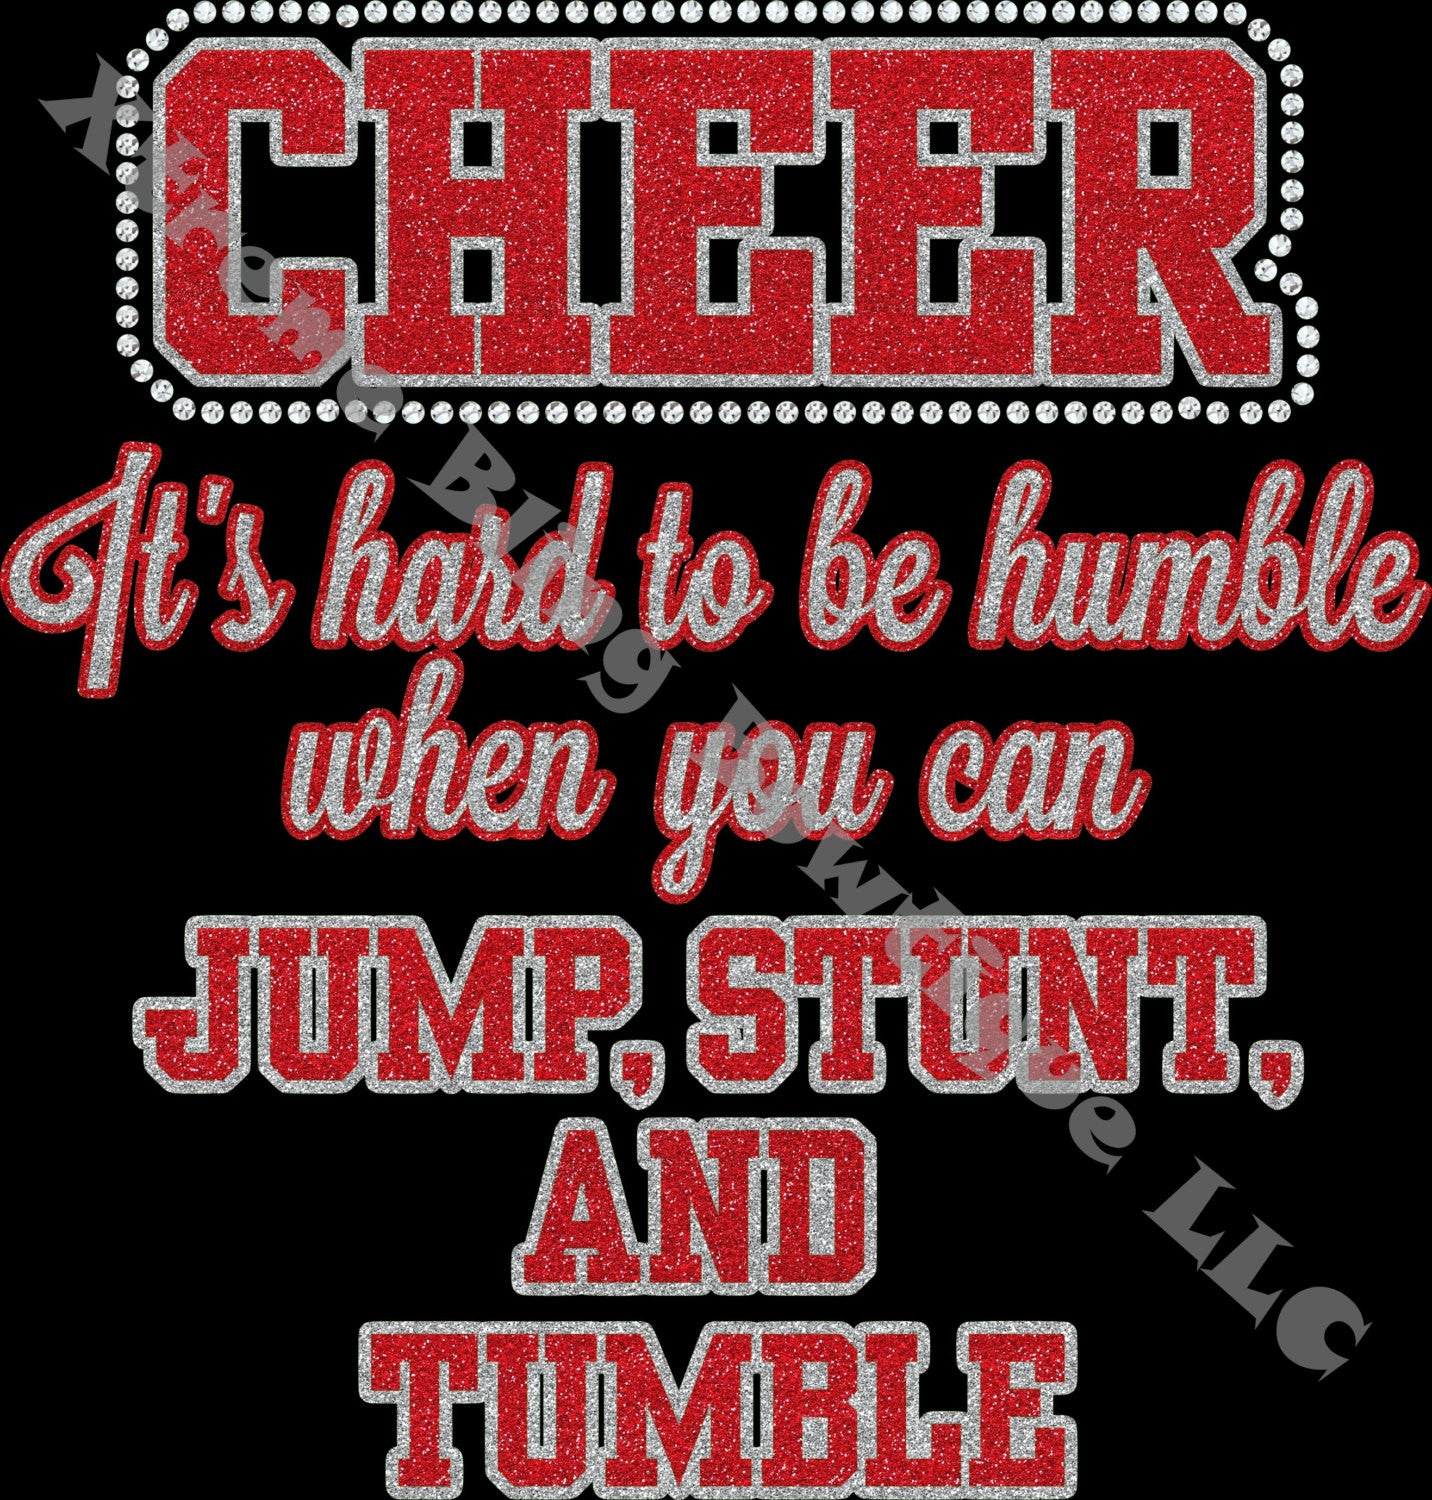 Cheer It's Hard To Be Humble When You Can Jump, Stunt, and Tumble